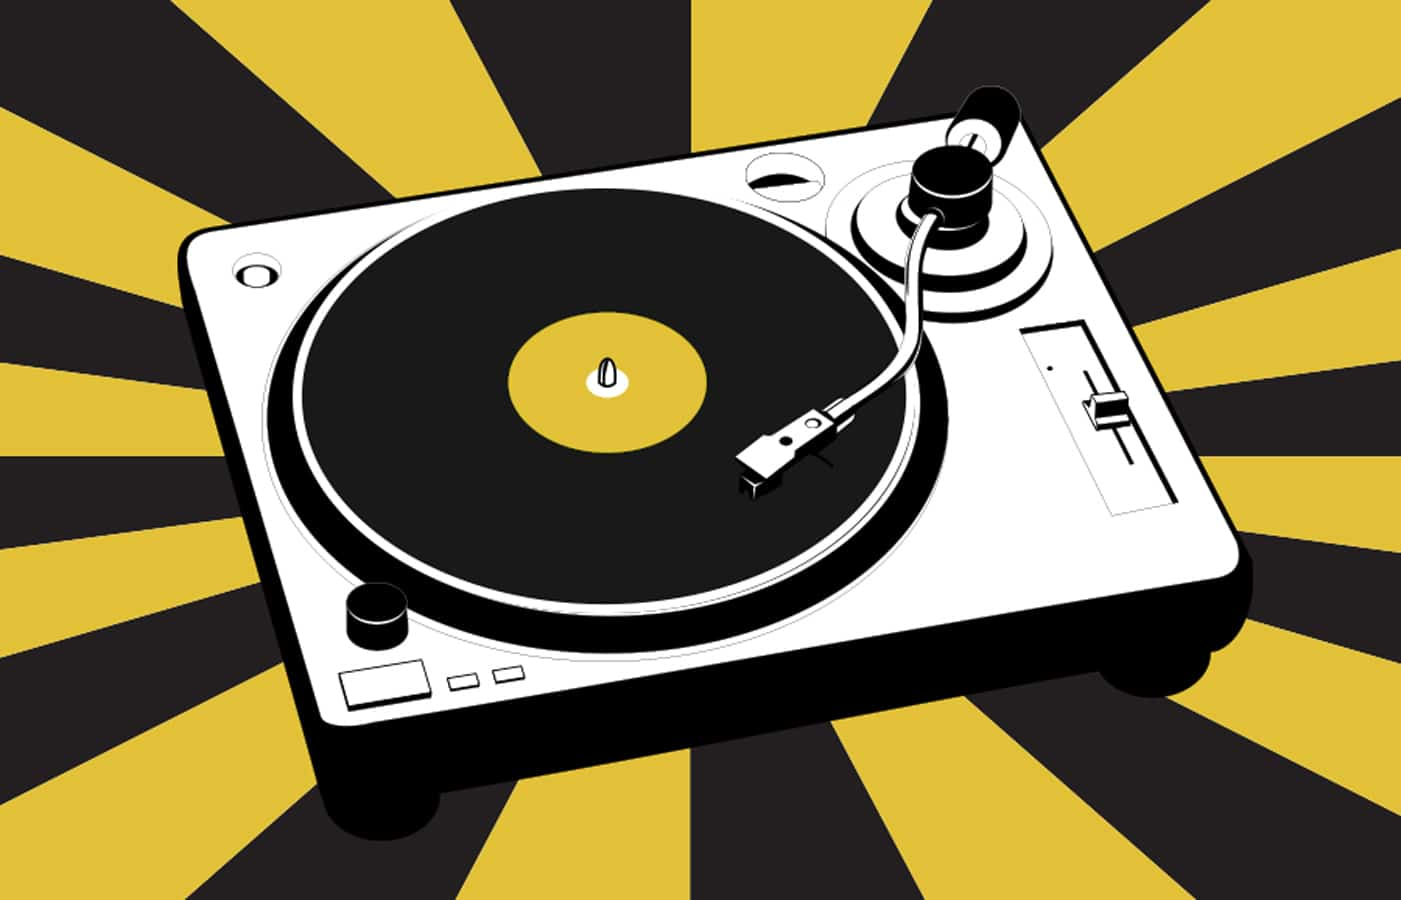 Illustration of a turntable on a yellow and black striped background